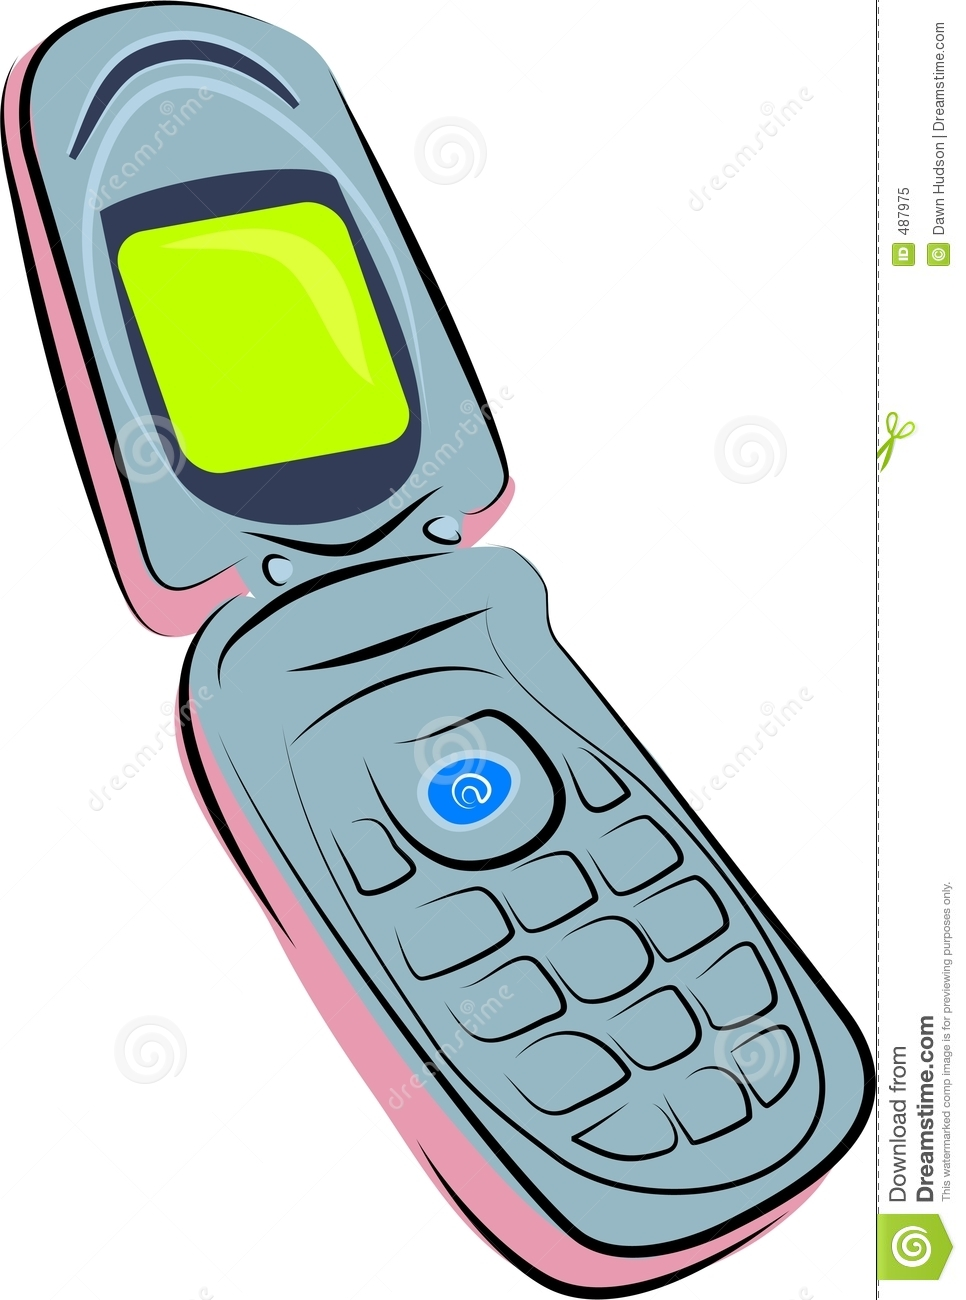 clipart pictures of mobile phones - photo #46